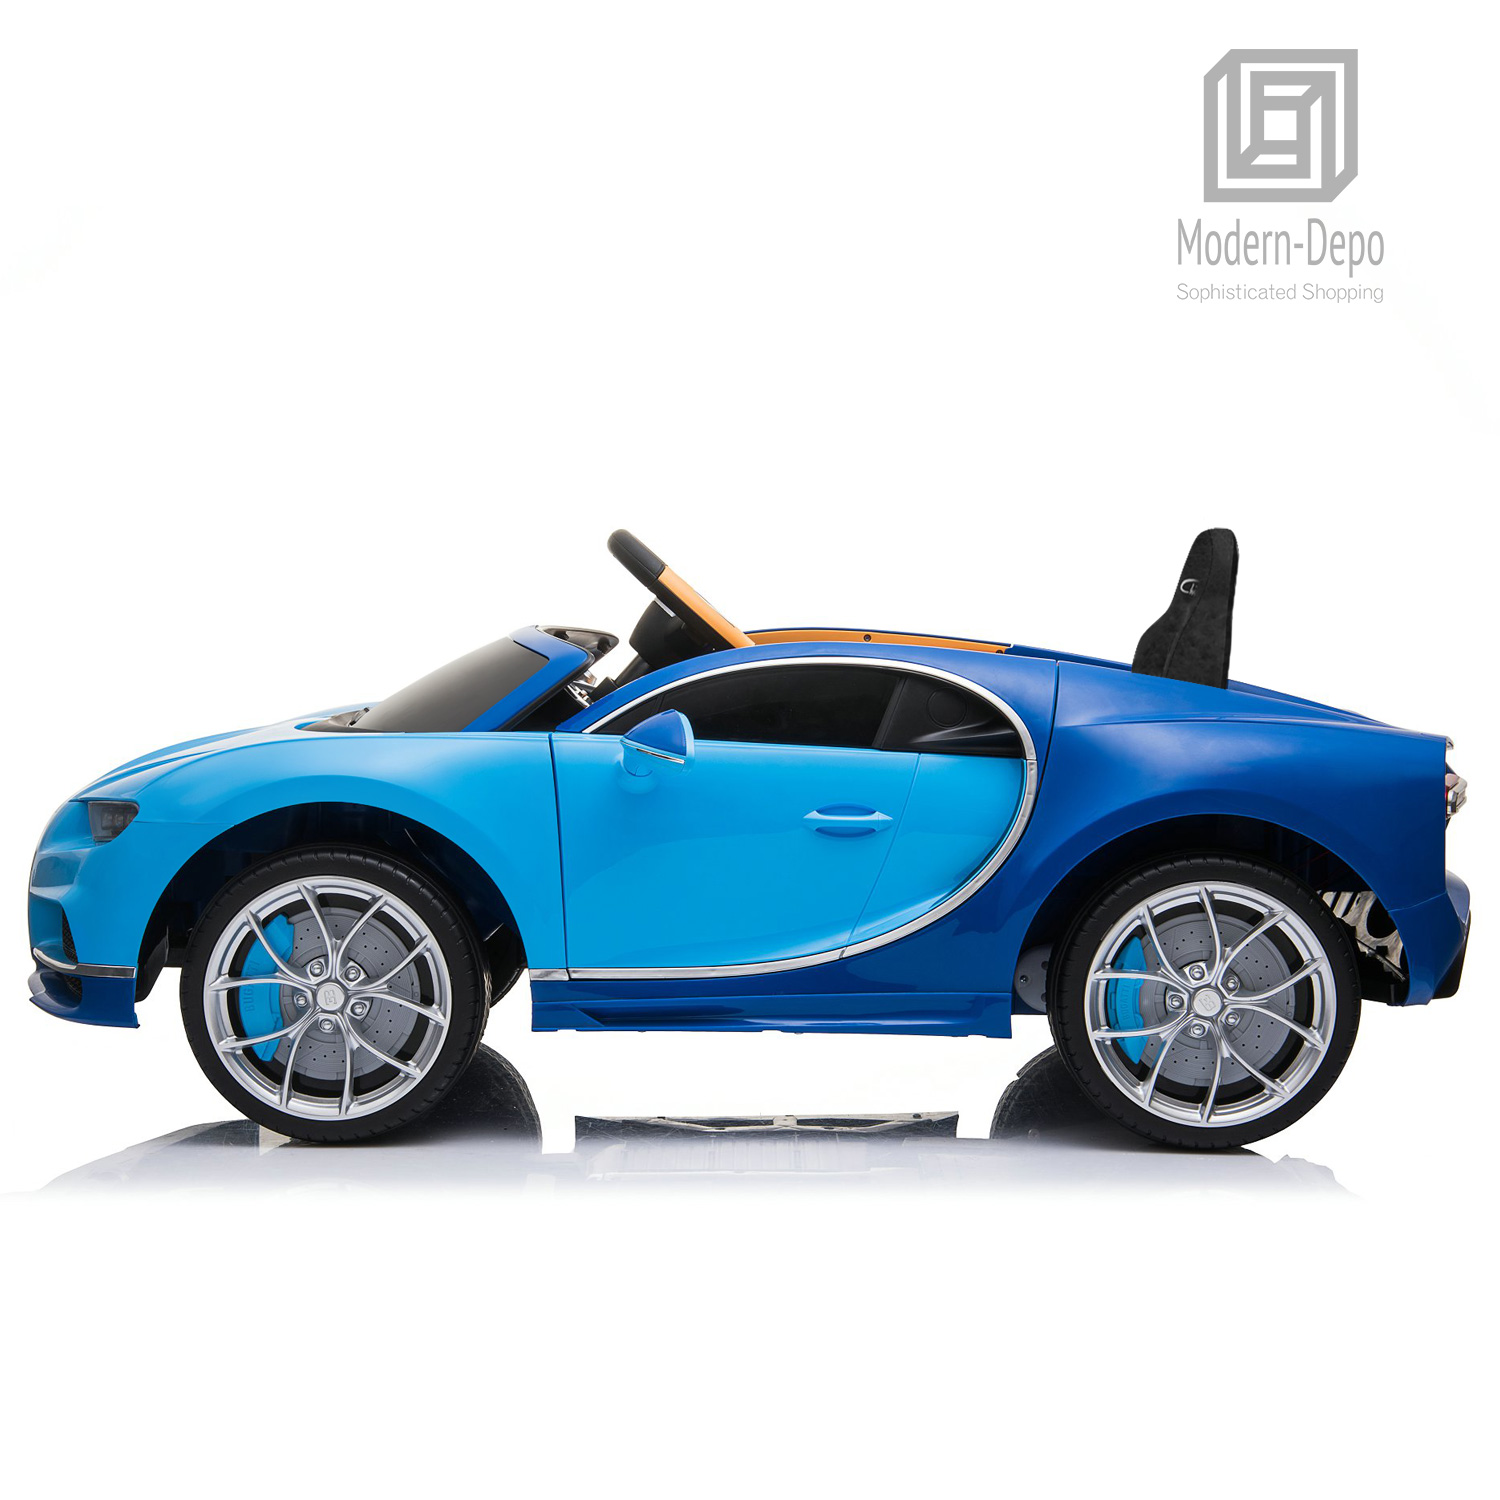 Bugatti-Chiron-12V-Kids-Ride-On-Car-with-Remote-Control-High-Speed-Motor miniature 17